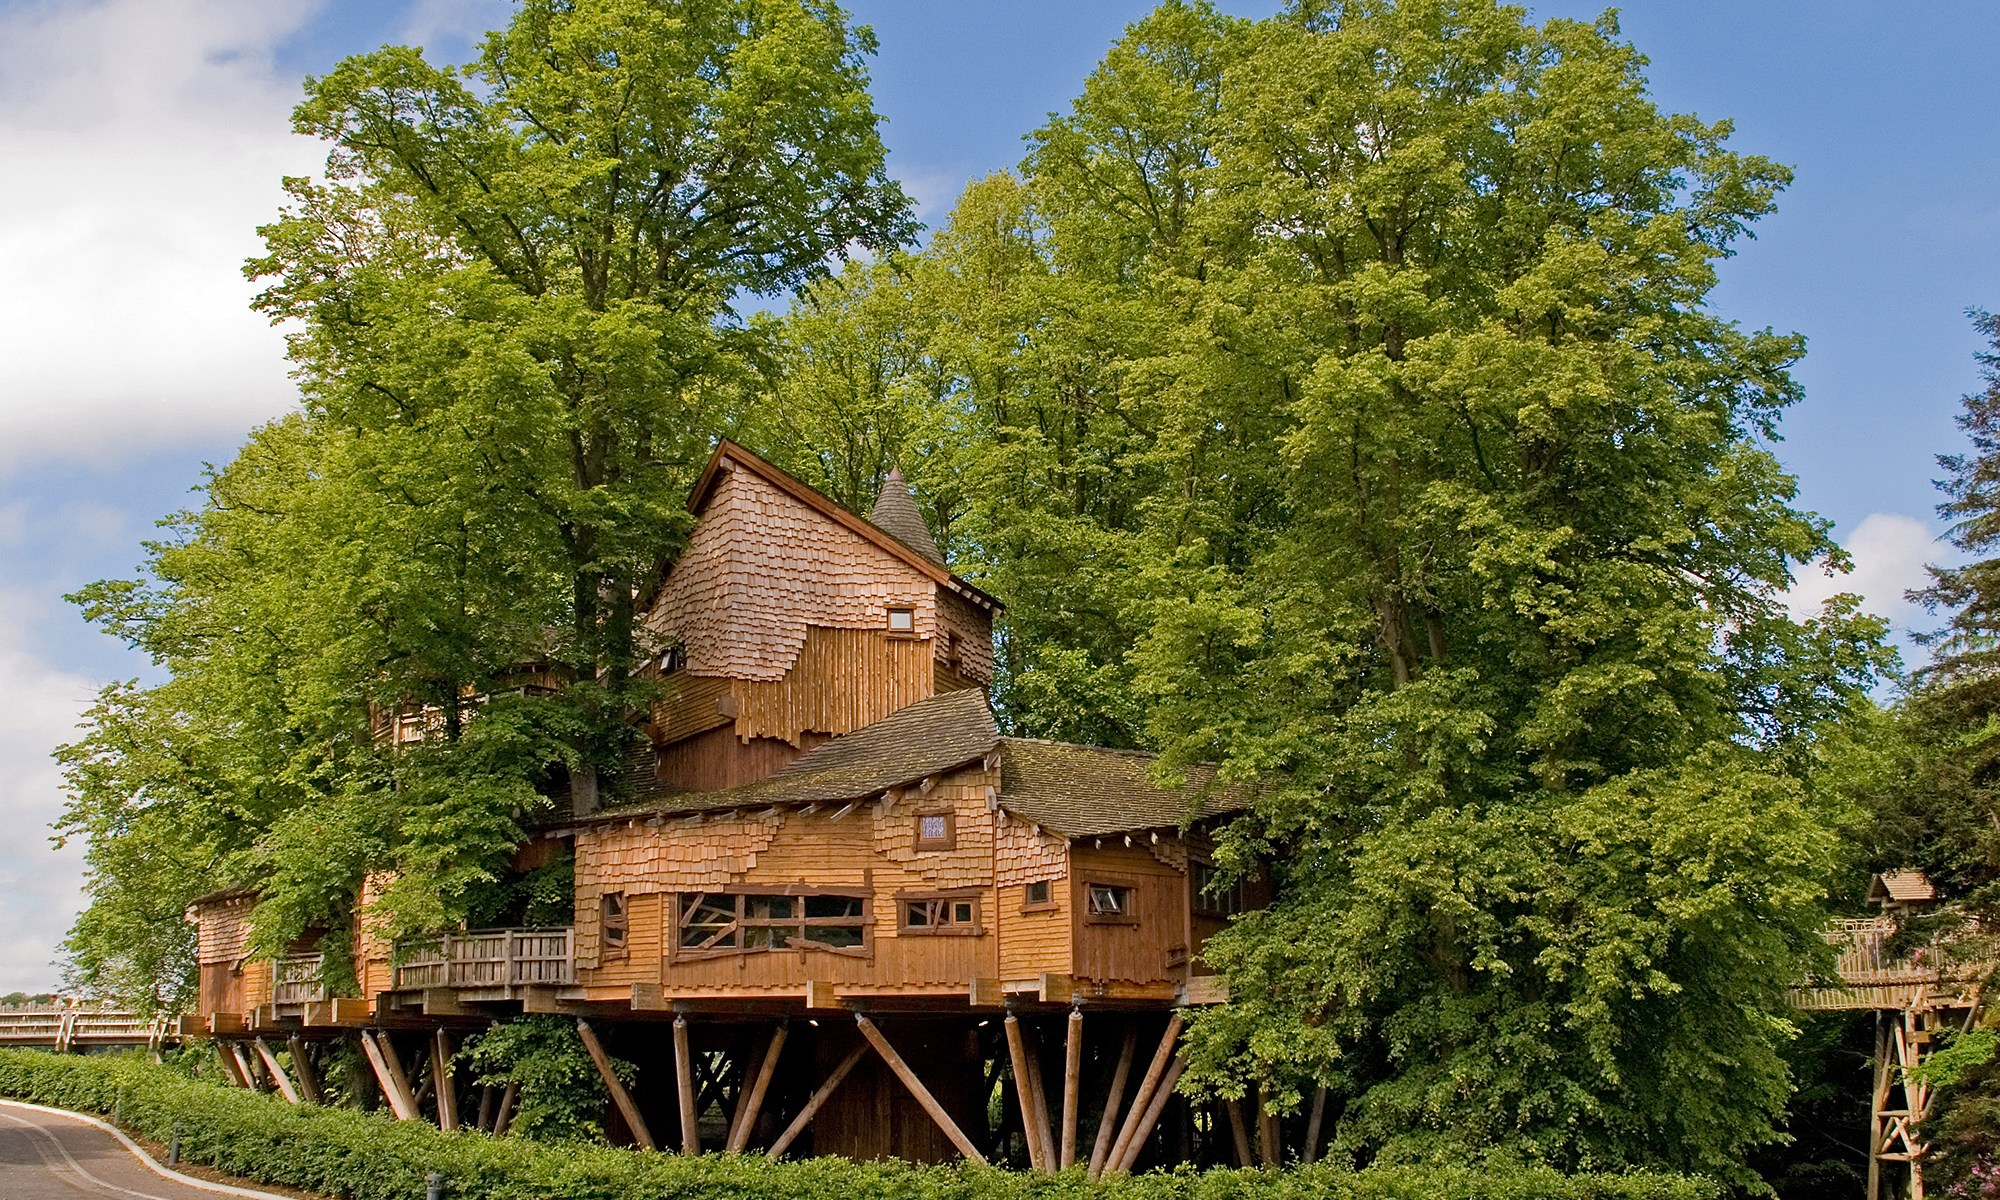 Treehouse at Alnwick Garden